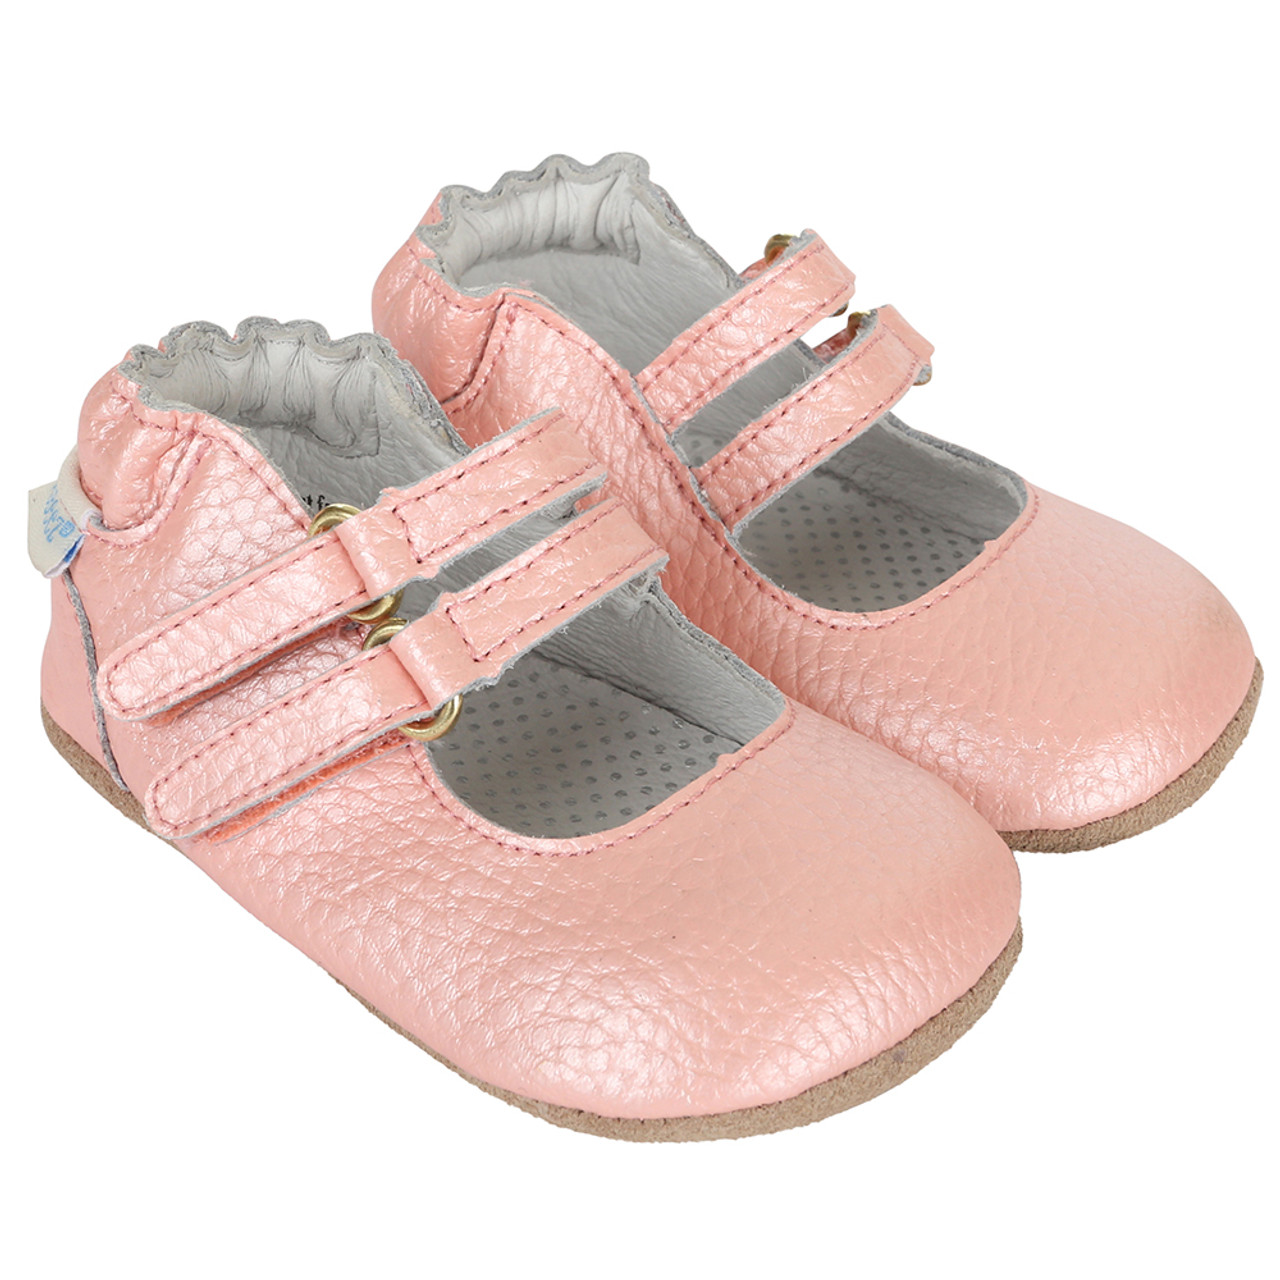 67e6927d8a02 Pink metallic double strapped infant girl shoe sizes 2